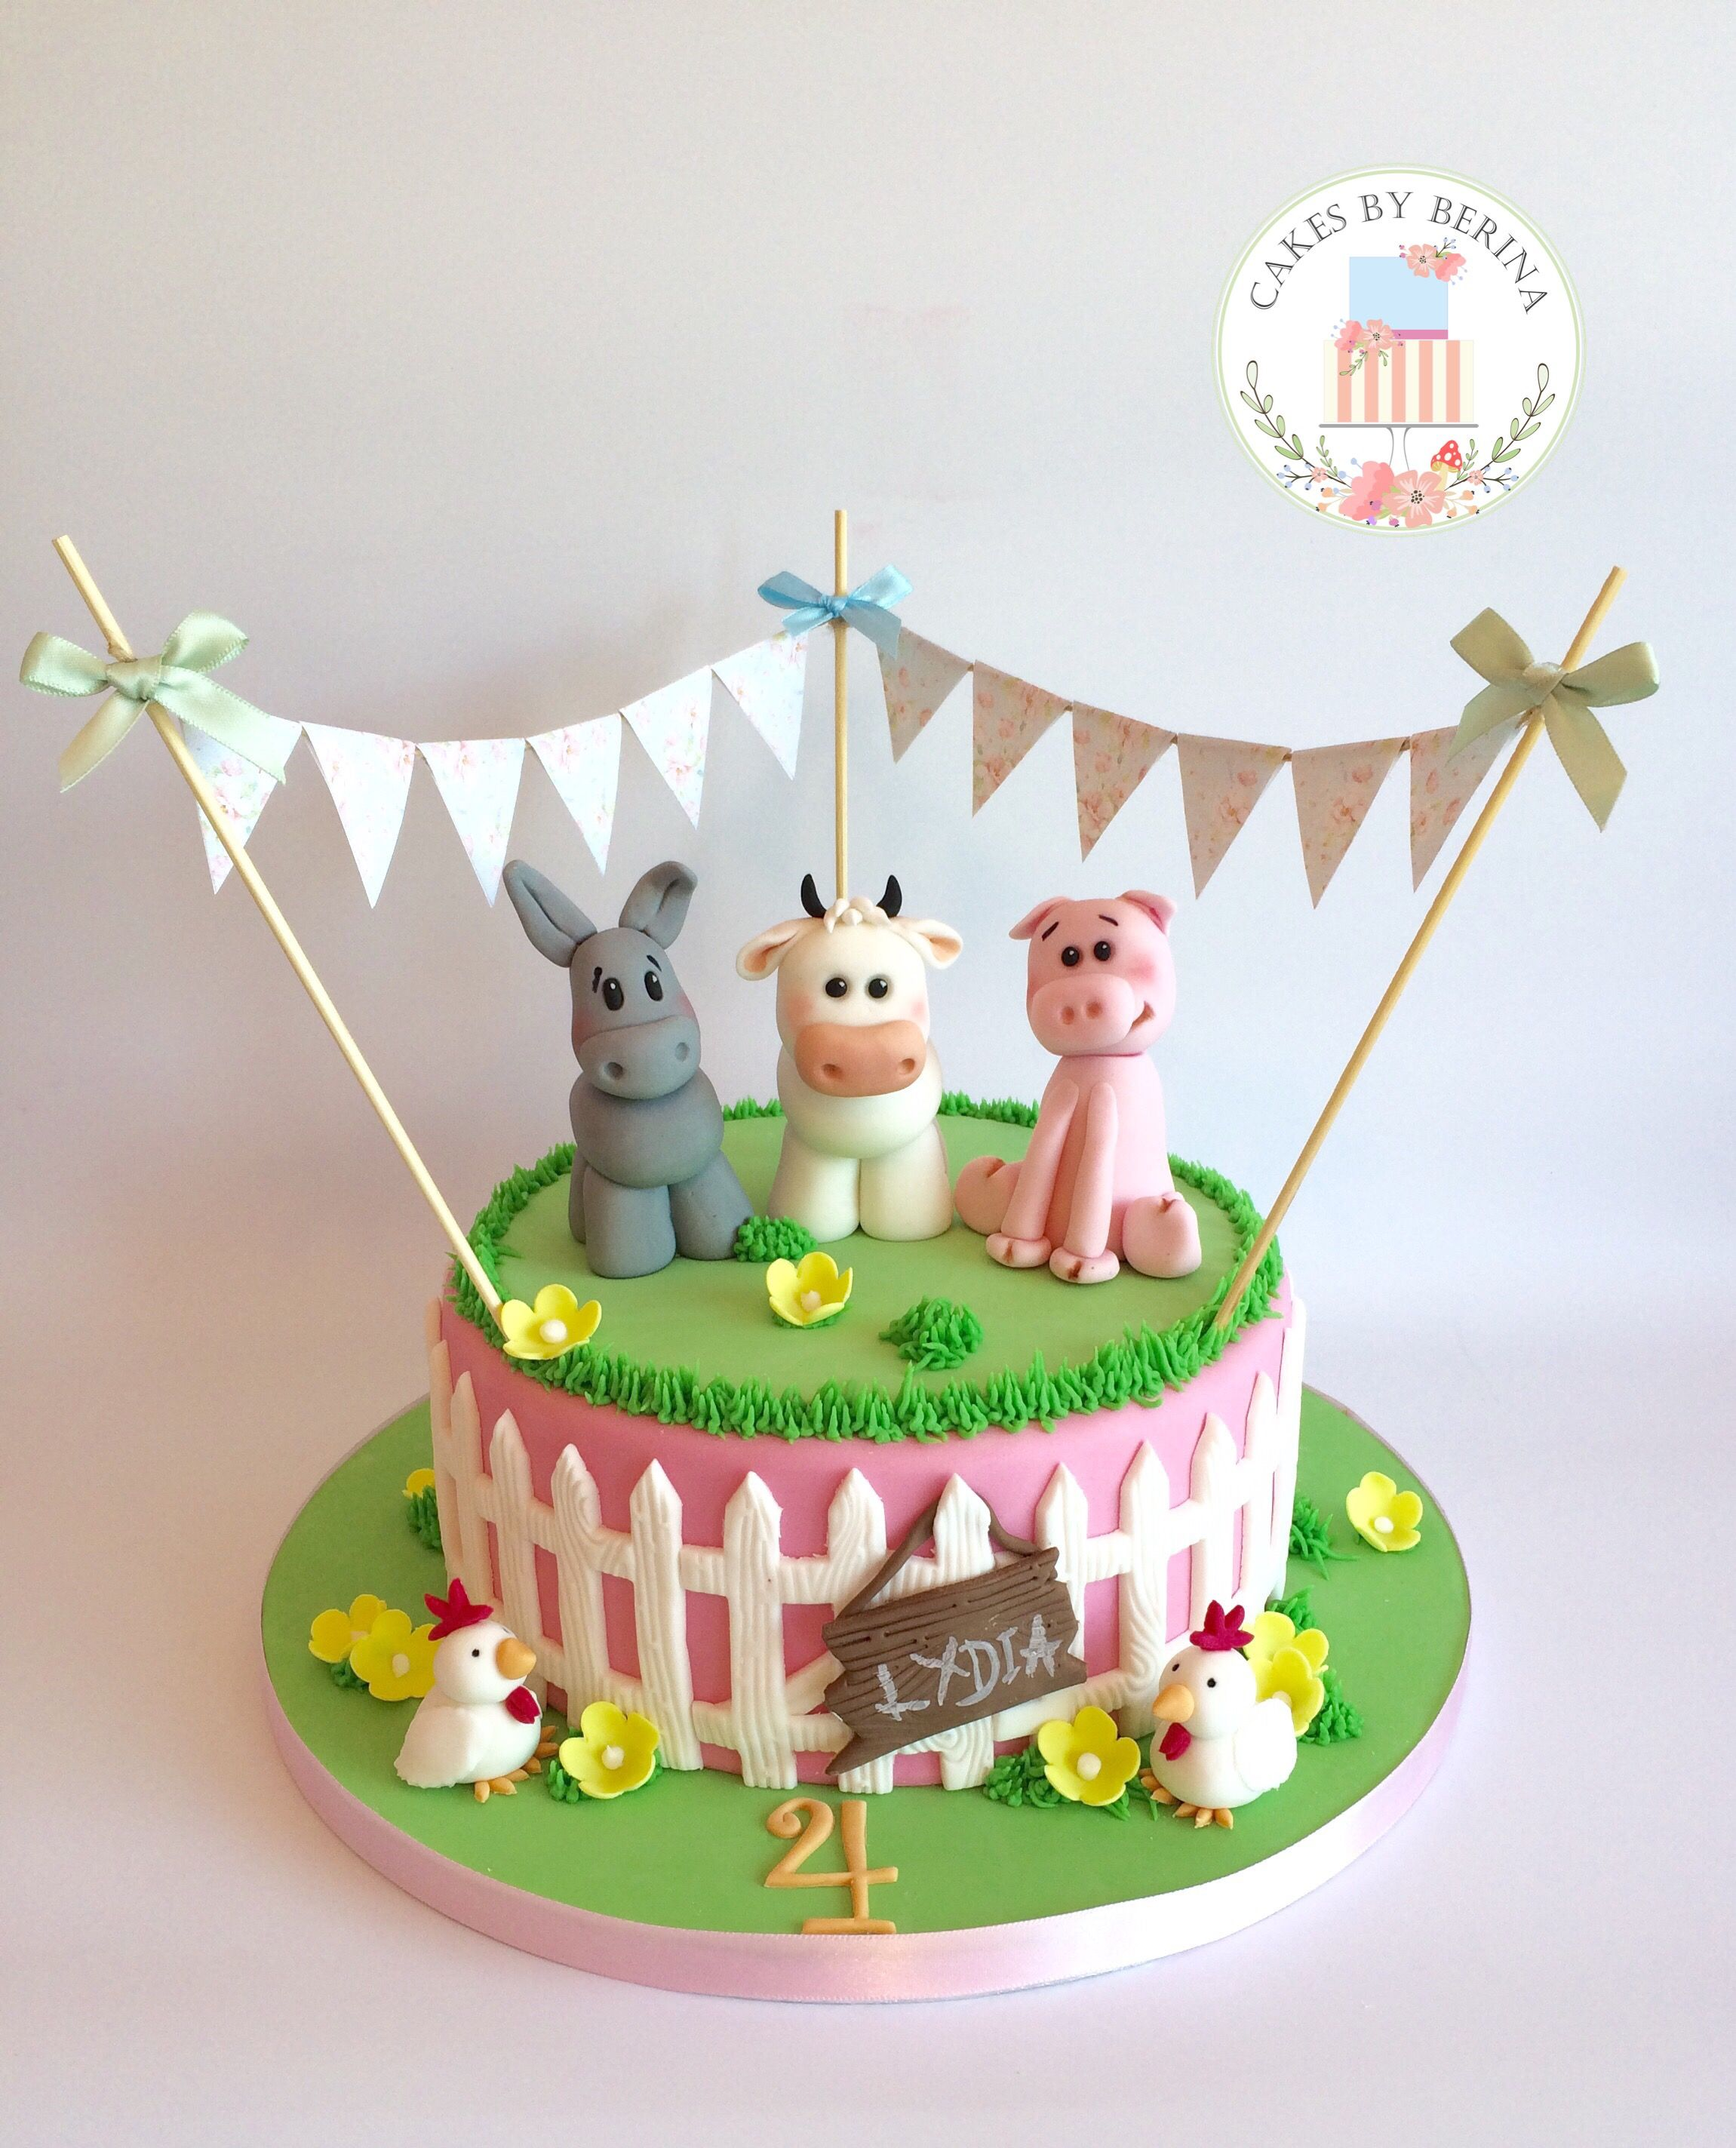 Girly Farm Animals Birthday Cake With Edible Cow Donkey